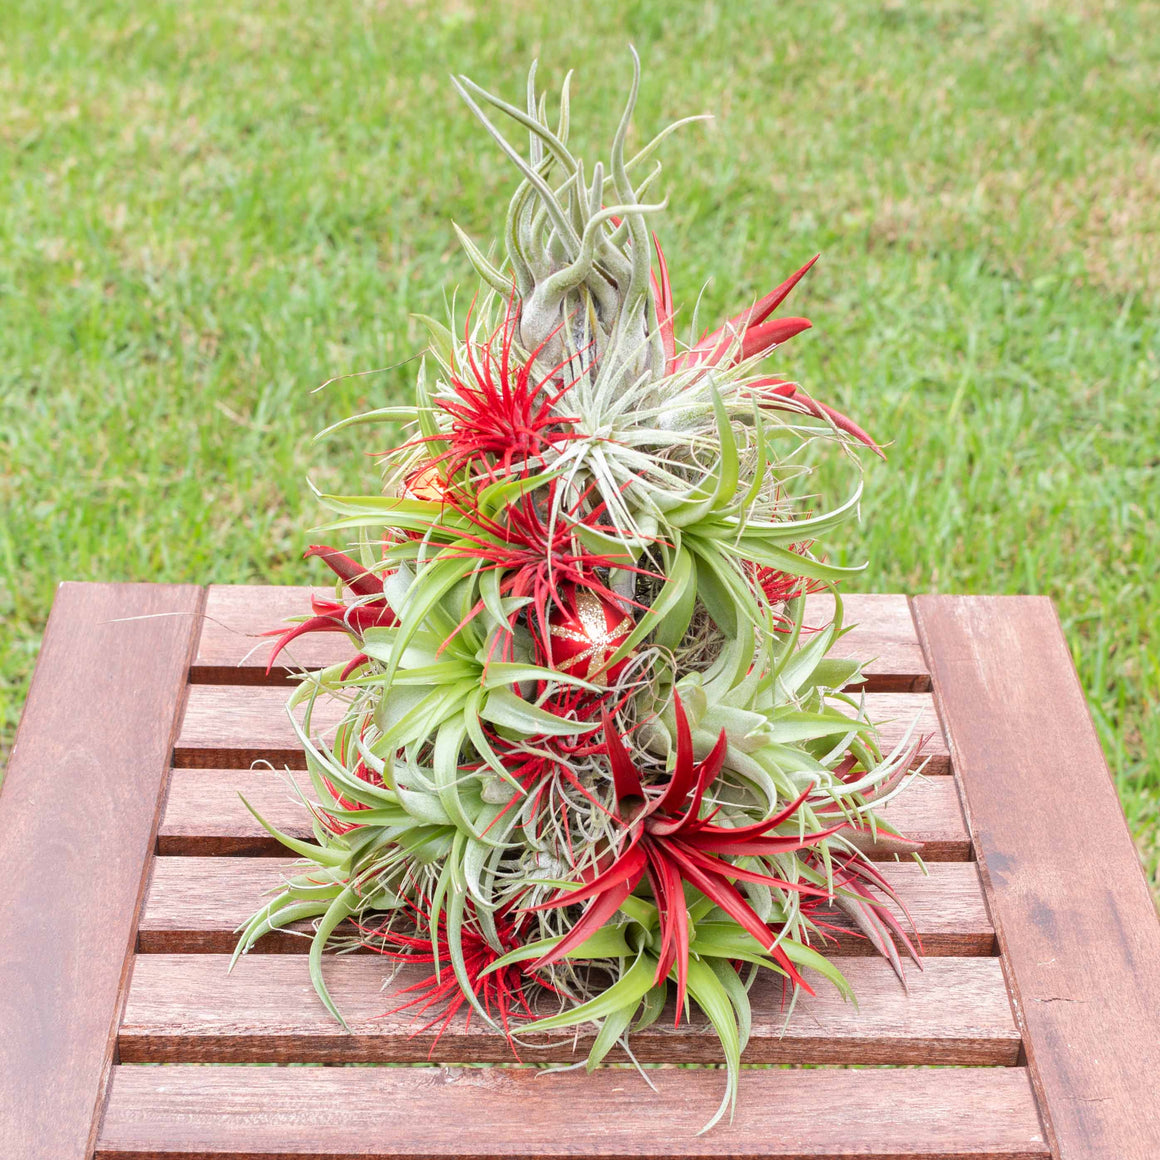 PRE-ORDER: 14 Inch Tall Handmade Air Plant Christmas Tree with 50 Living Tillandsias